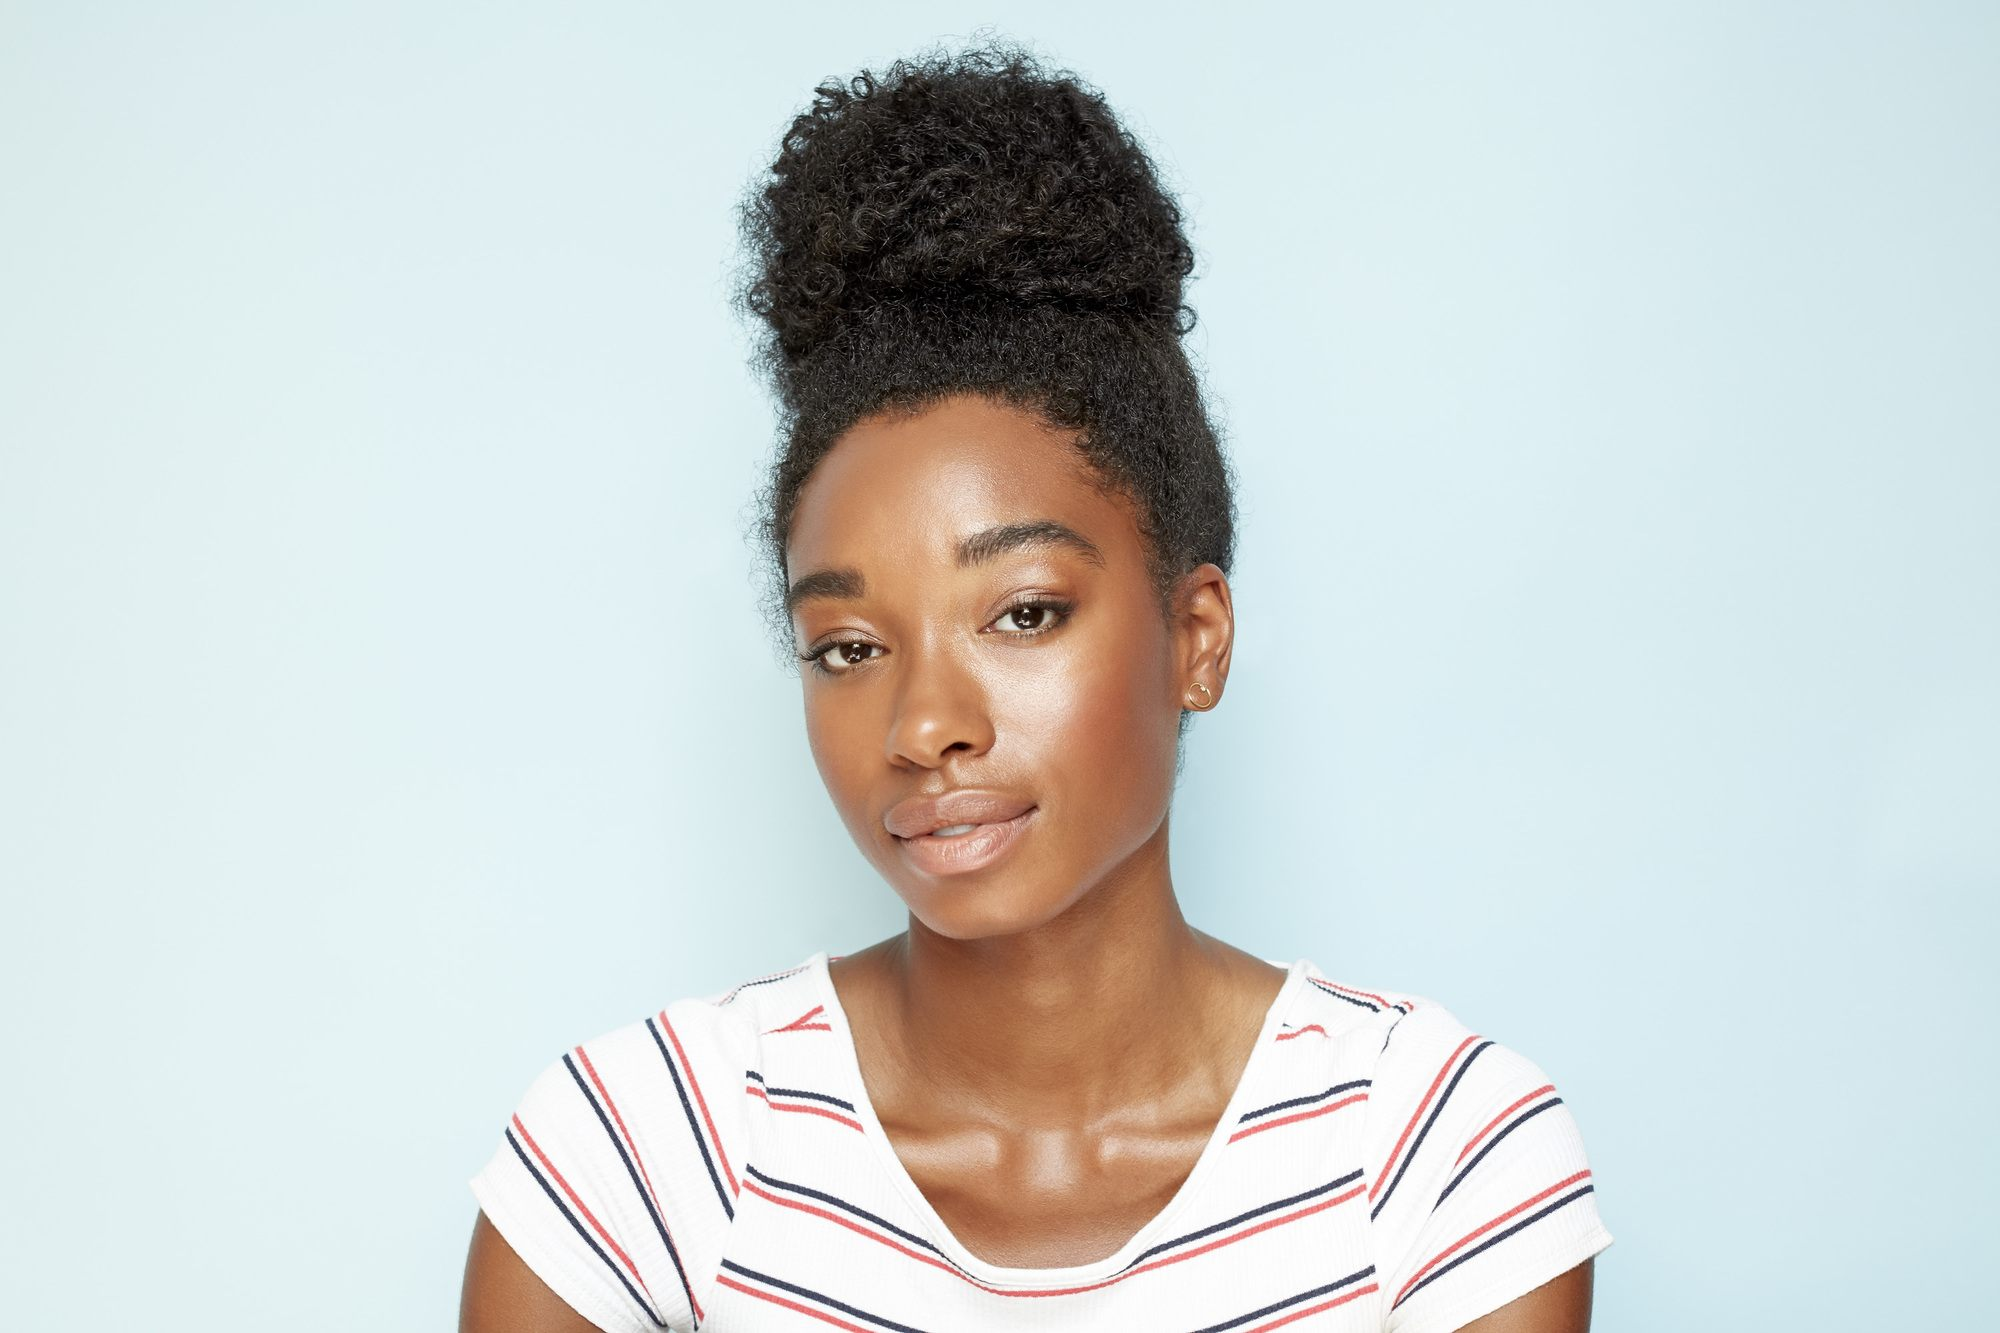 Easy natural hairstyles: Close up shot of a model with dark brown natural hair styled into a high bun, wearing a striped top and posing against a blue background.